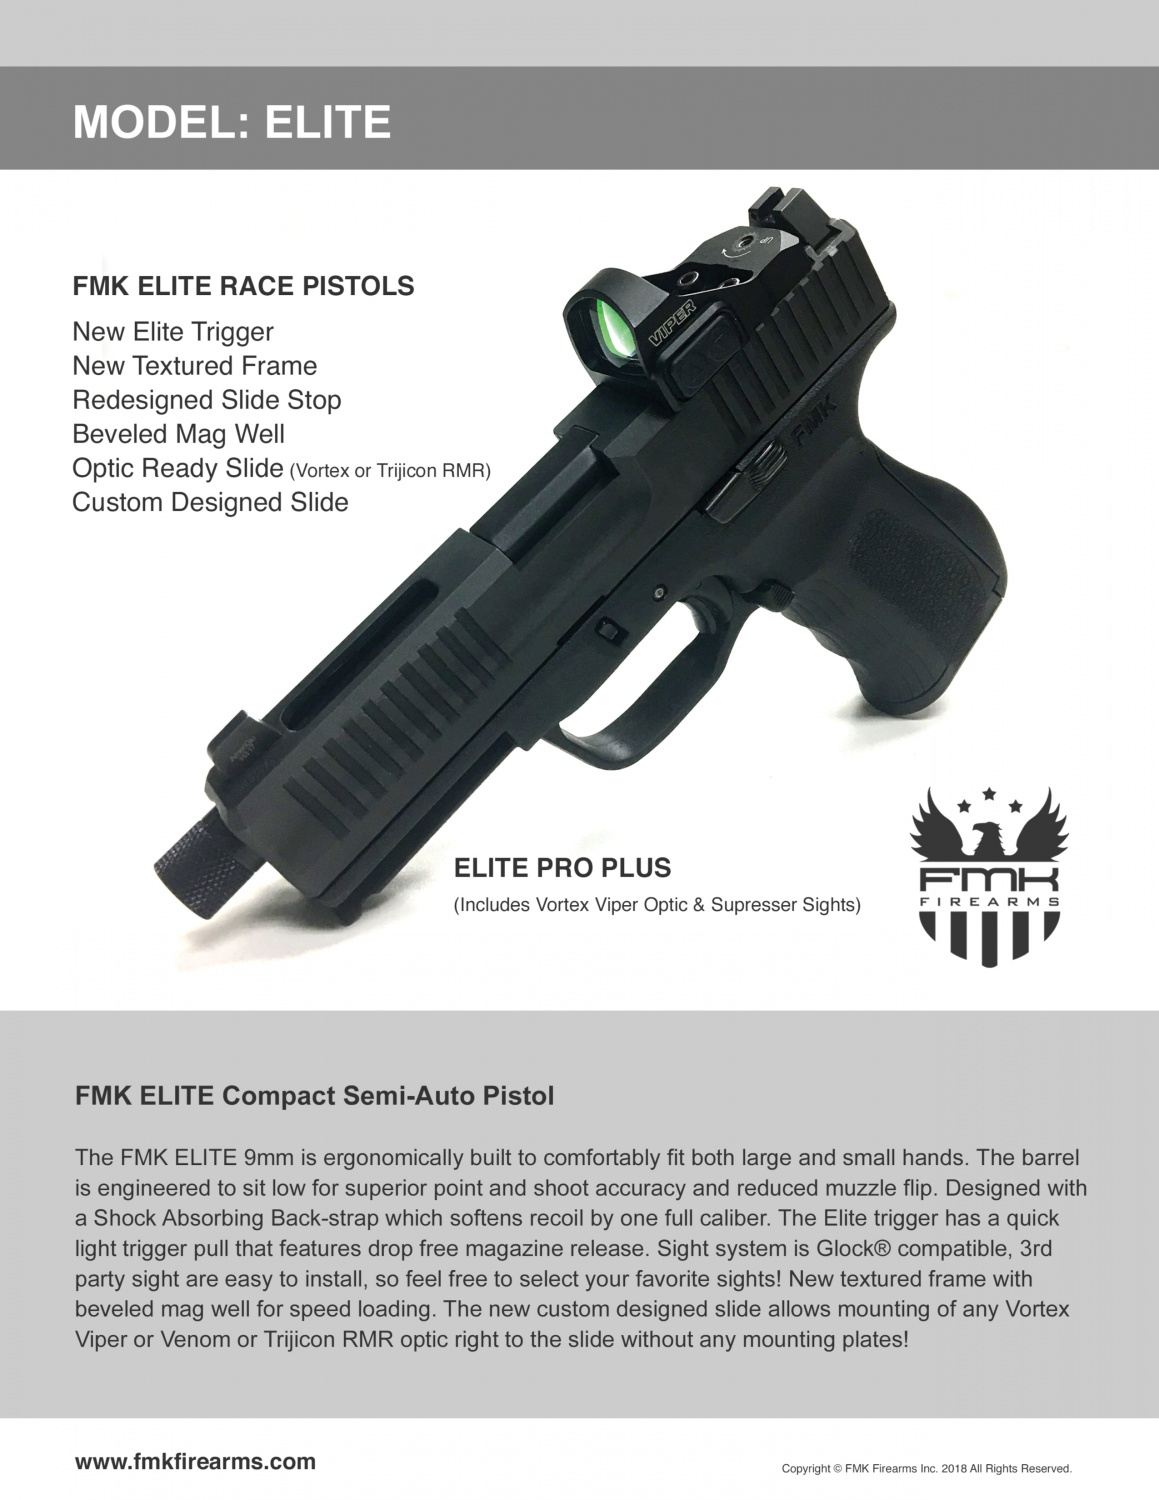 FMK Firearms Releasing NEW Series of Elite Race Pistols -The Firearm